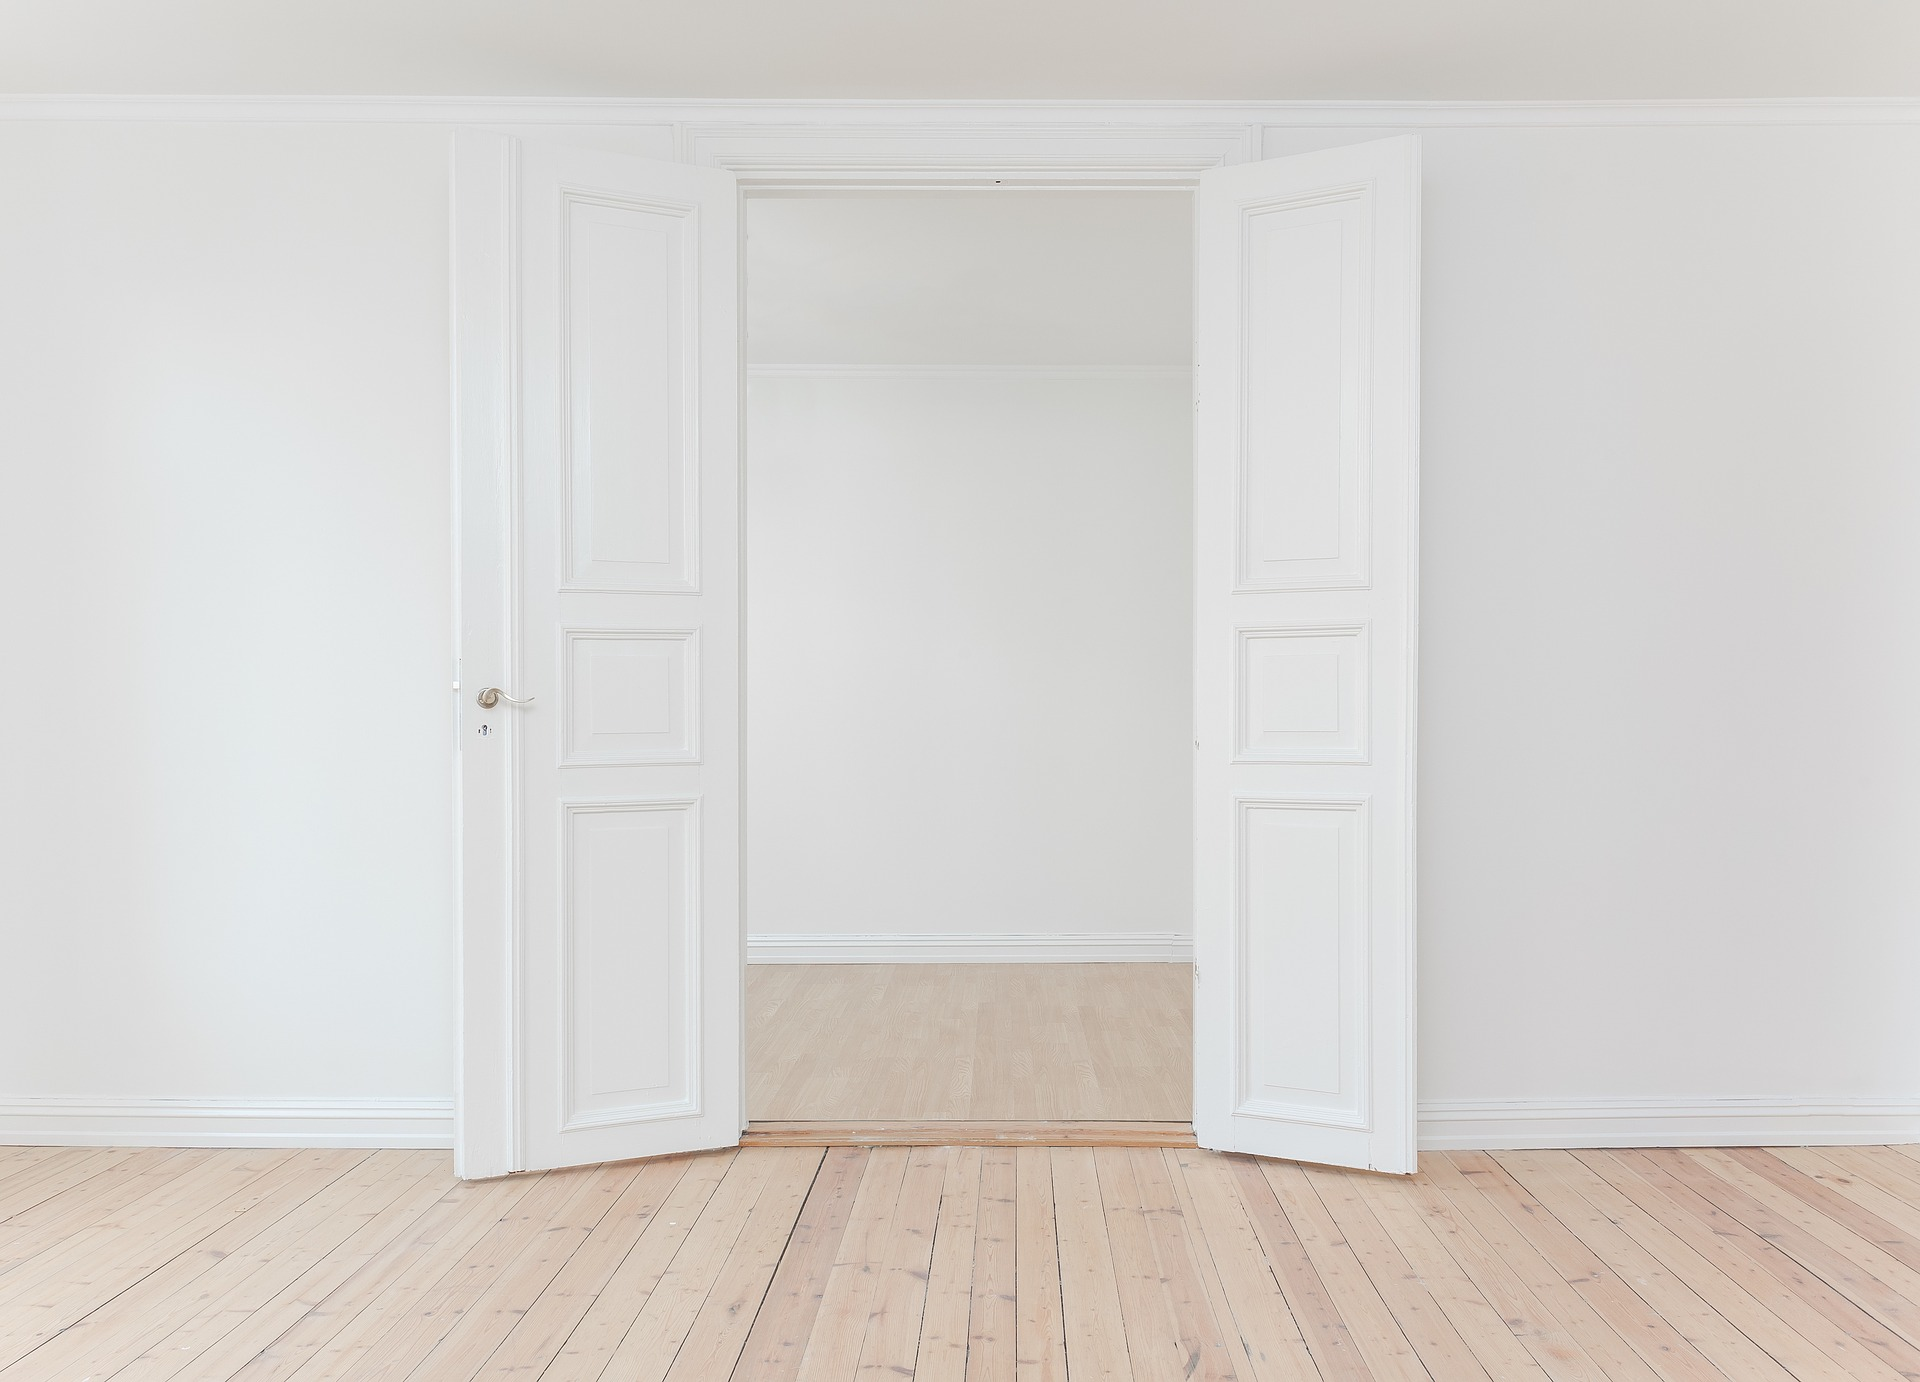 open white double door in empty house